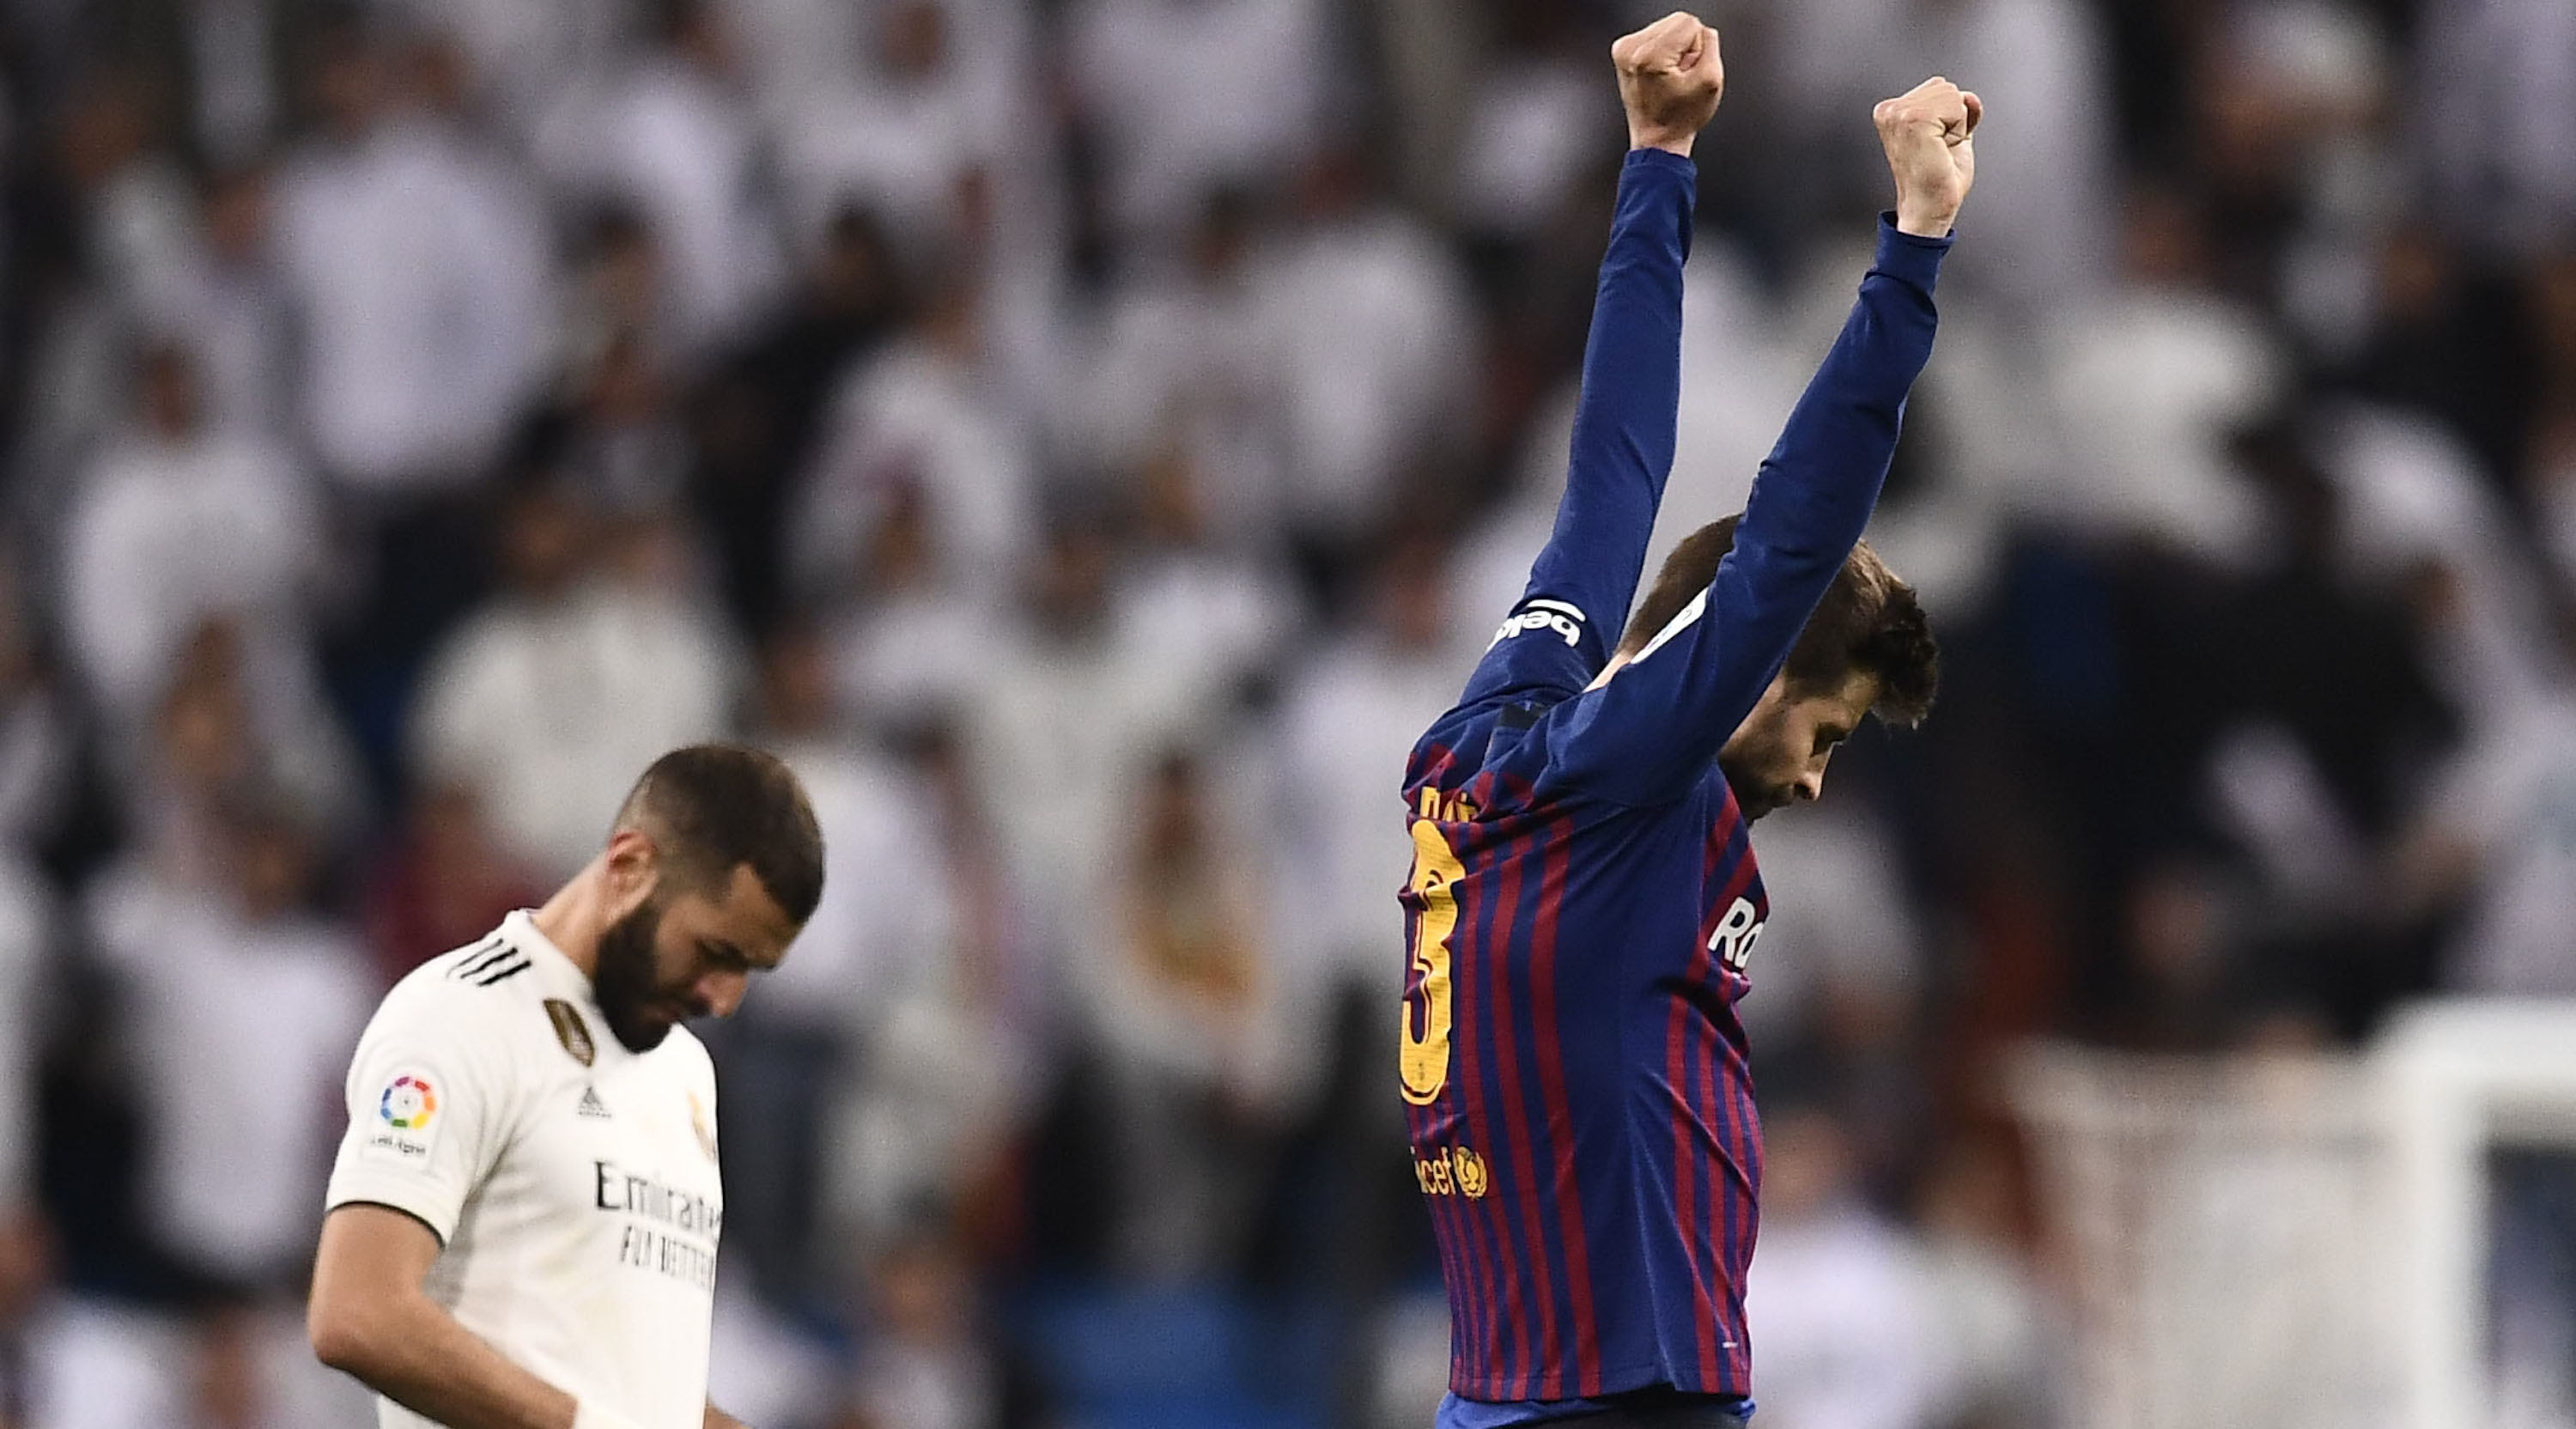 Barcelona's Spanish defender Gerard Pique celebrates during the Spanish league football match between Real Madrid CF and FC Barcelona at the Santiago Bernabeu stadium in Madrid on March 2, 2019. (Photo by OSCAR DEL POZO / AFP) (Photo credit should read OSCAR DEL POZO/AFP/Getty Images)